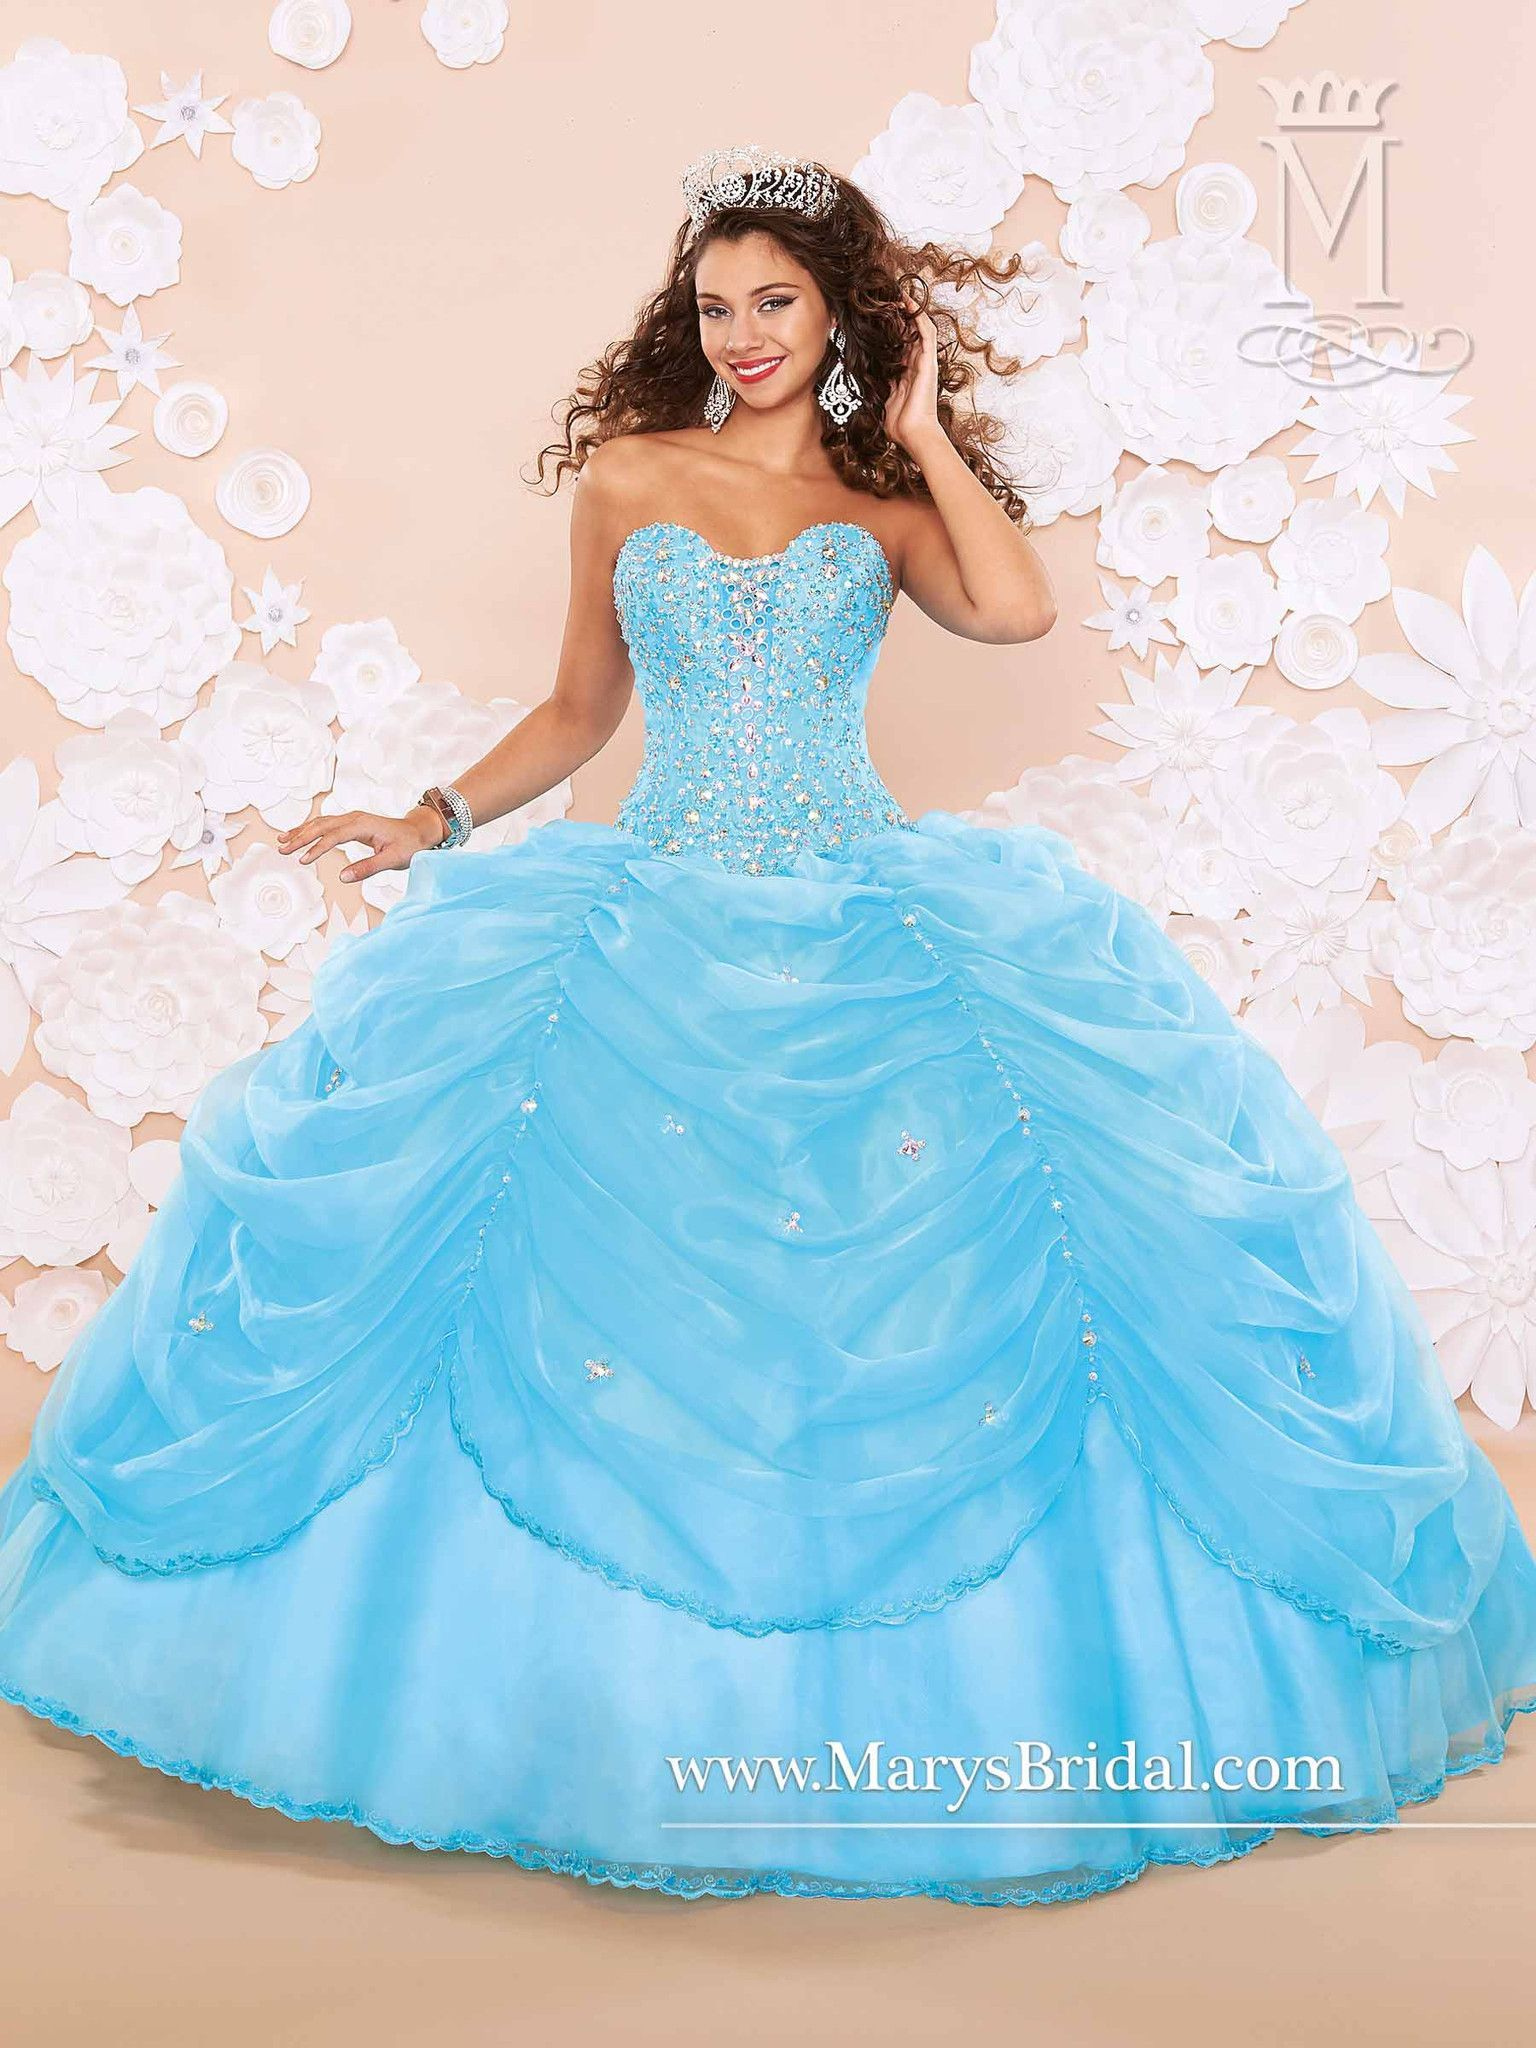 Sweet 16 - Quinceanera Dress 3004Q383 | Quinceañera | Pinterest ...